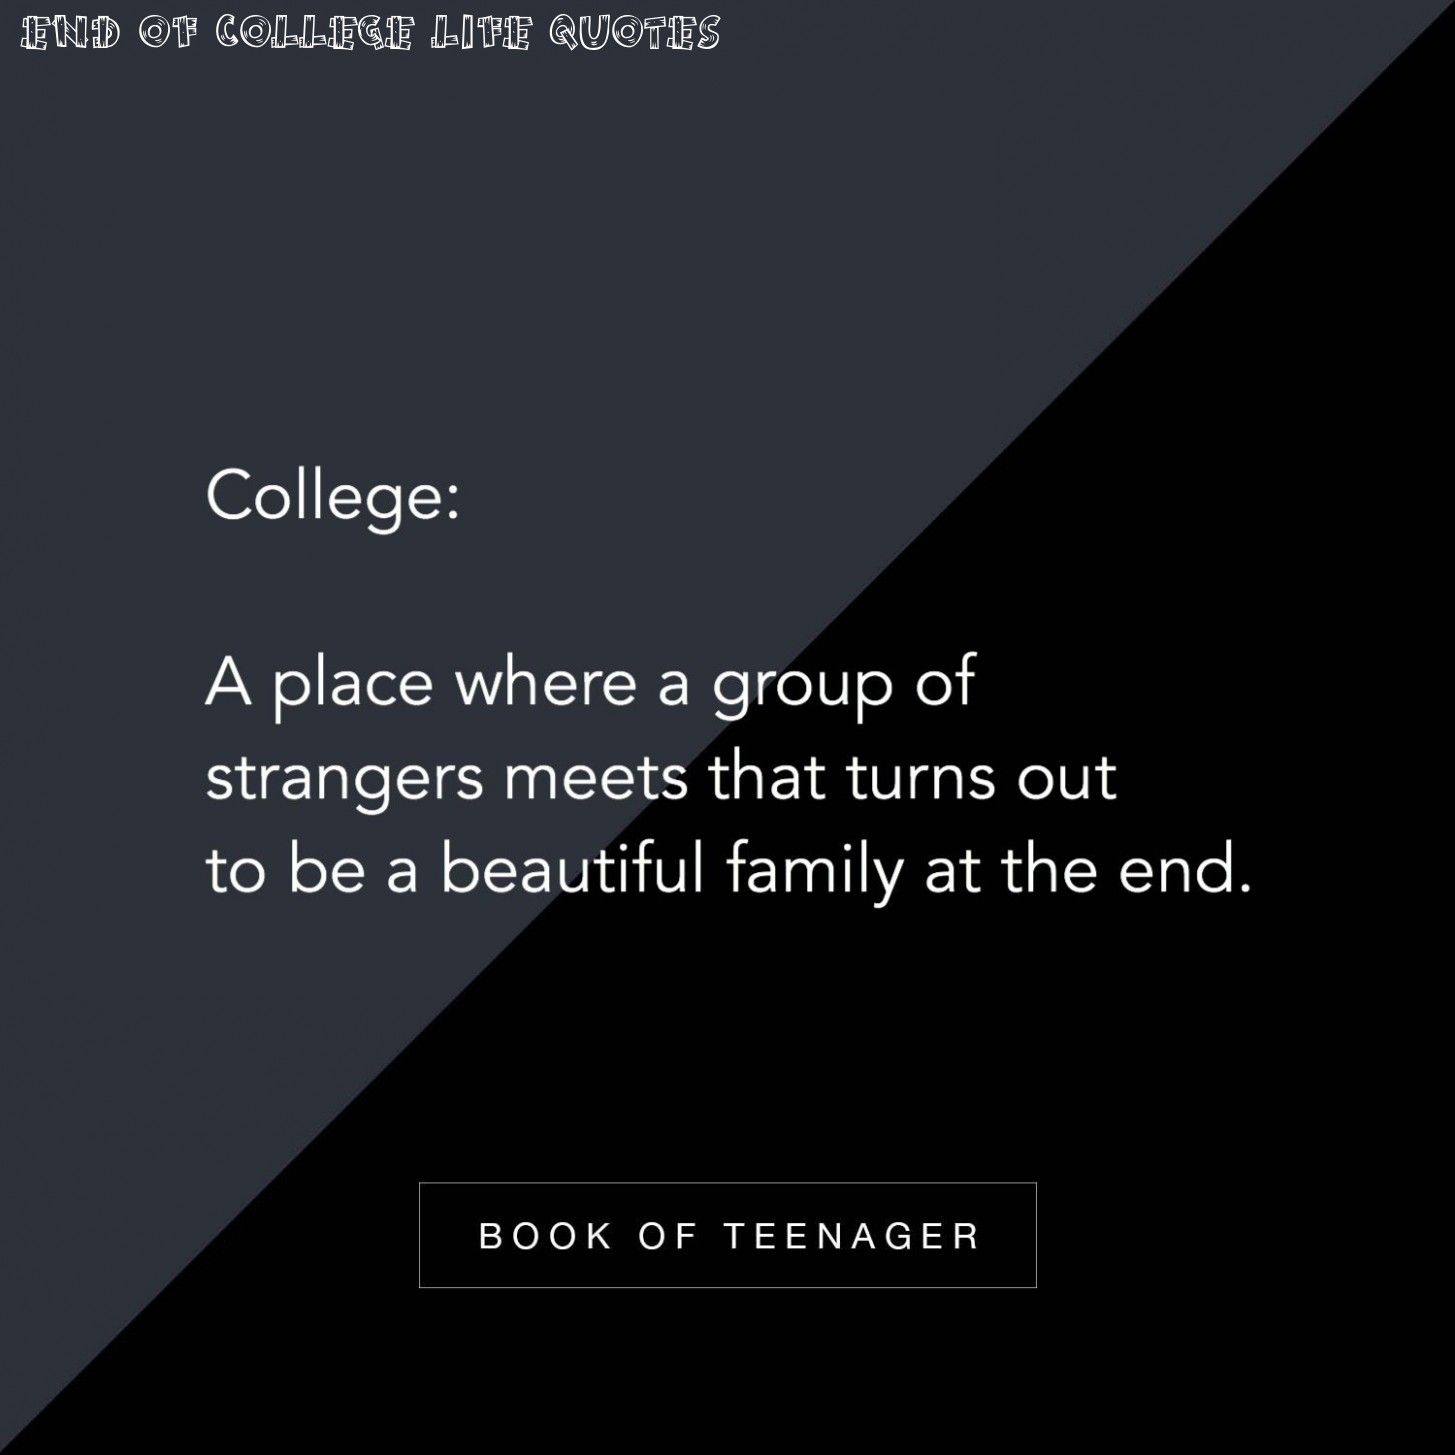 5 End Of College Life Quotes in 5  College life quotes